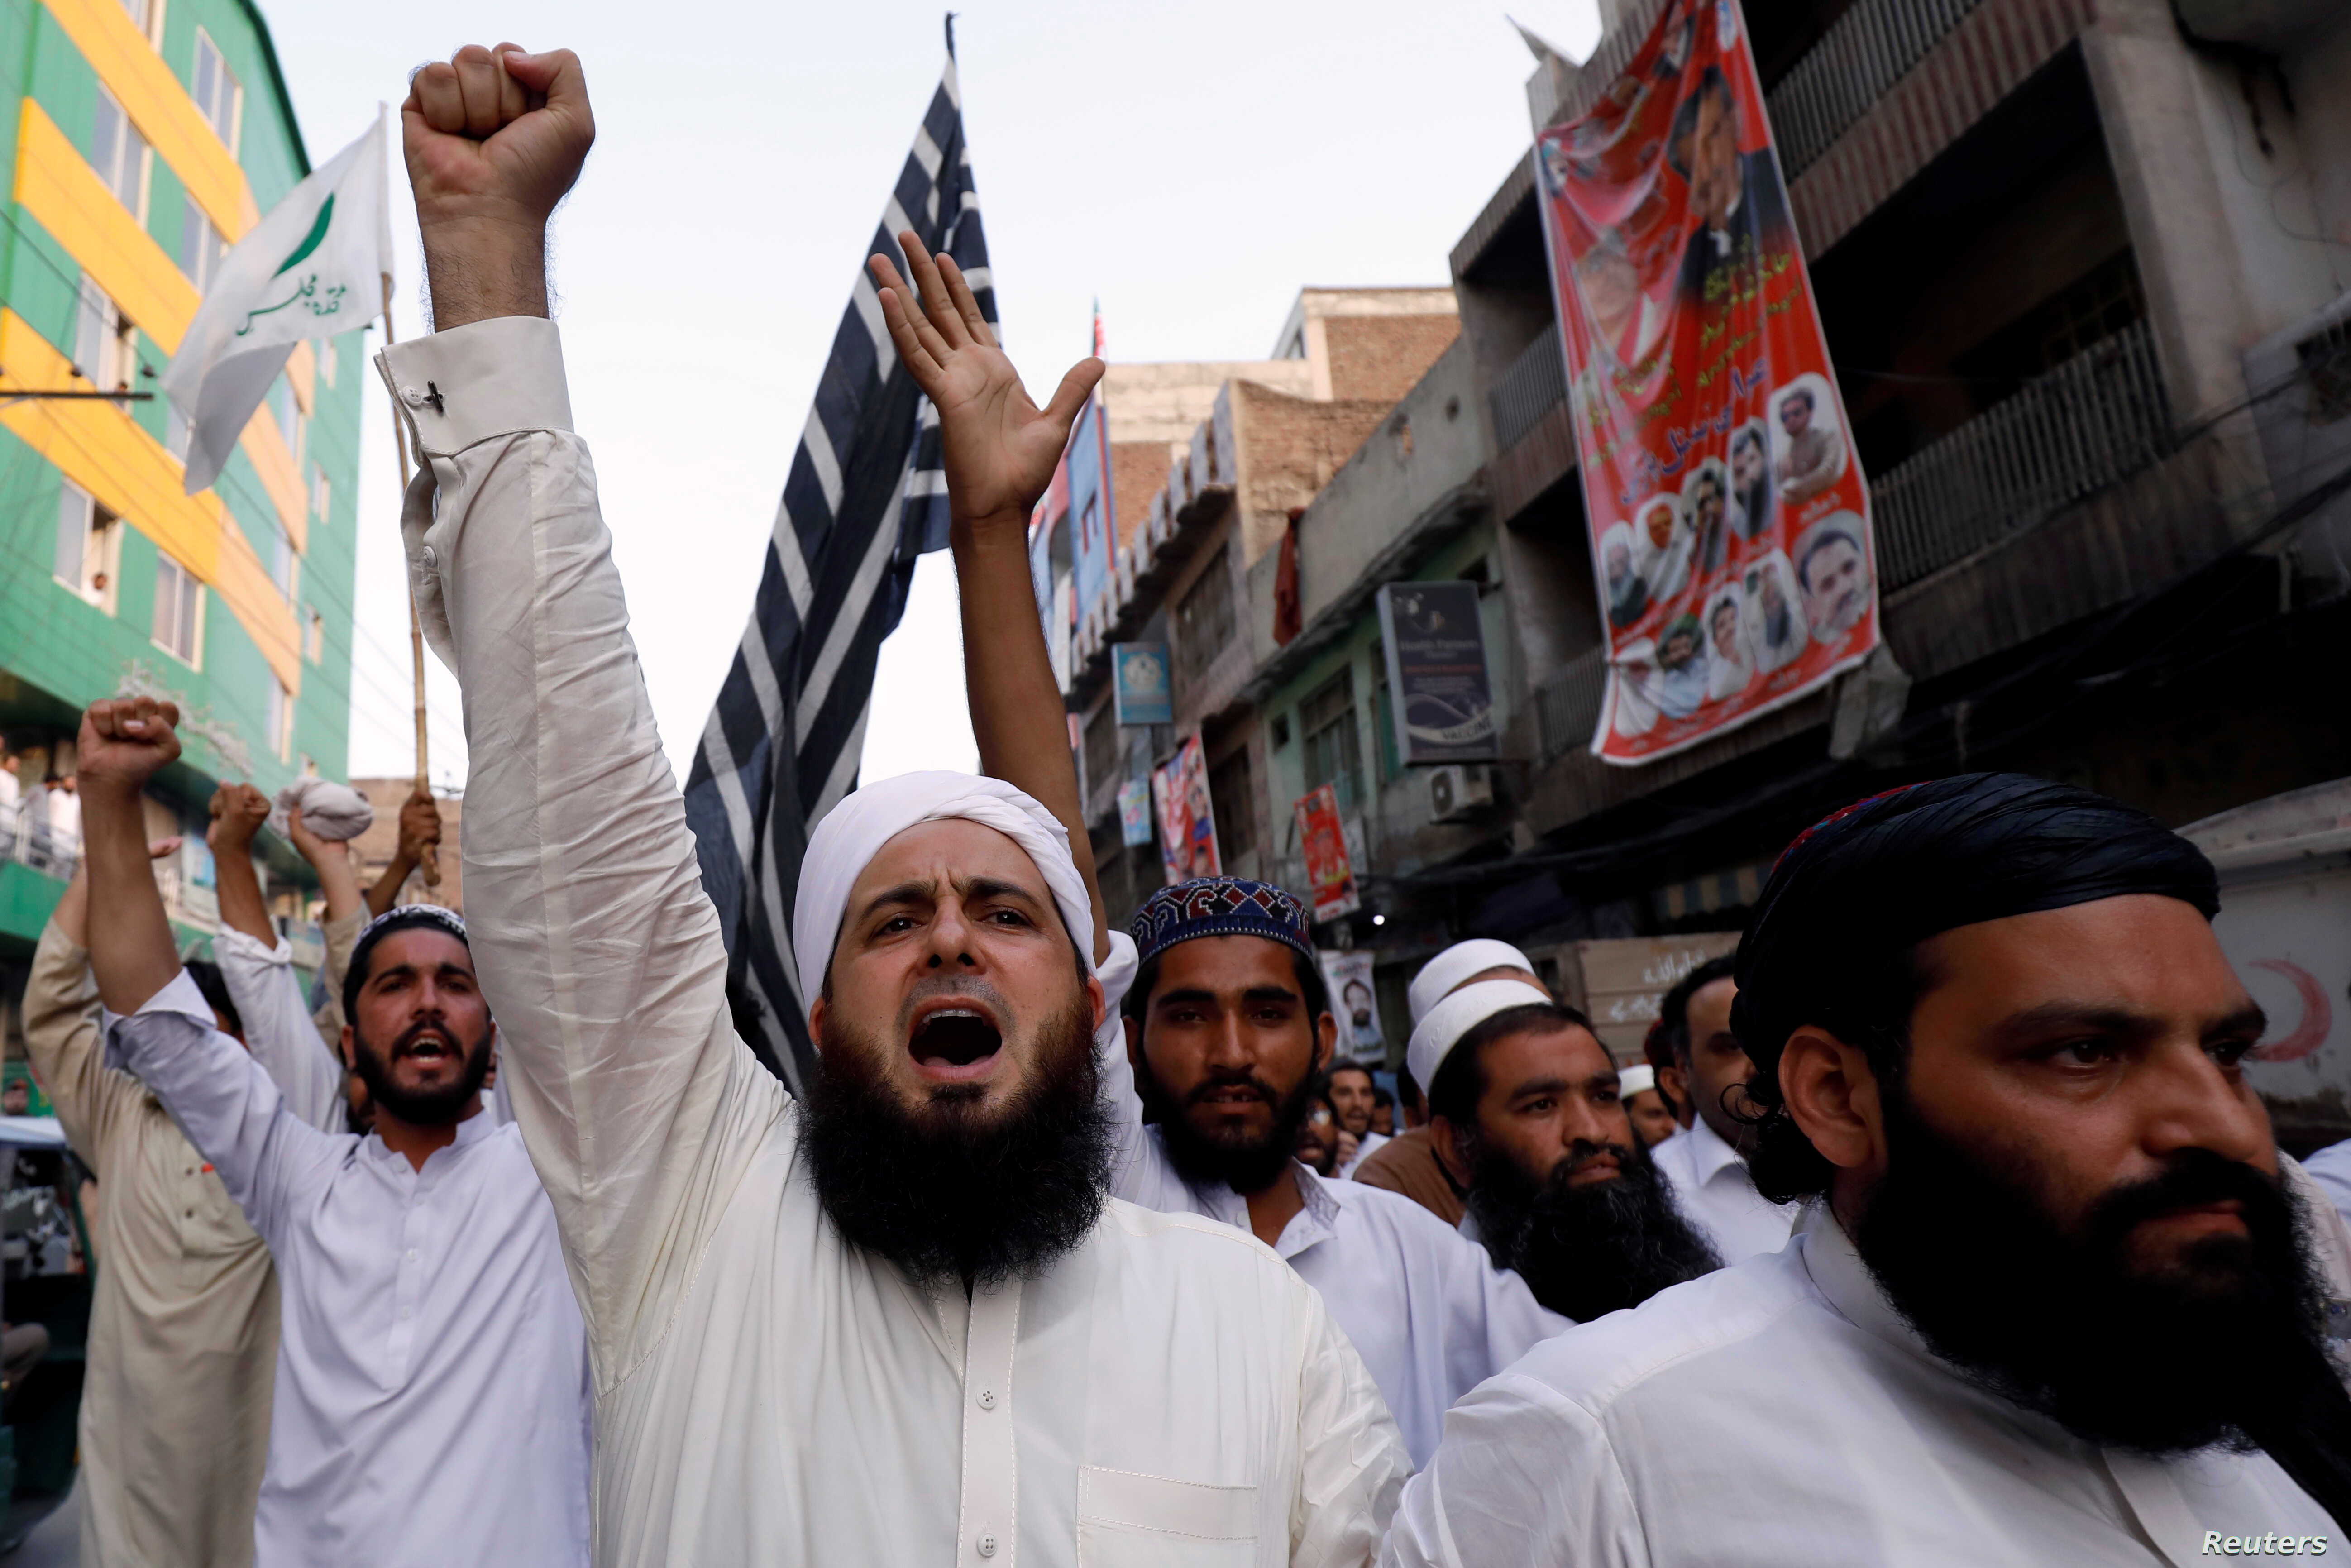 Supporters of the Muttahida Majlis-e-Amal (MMA), a coalition between religious-political parties, chant slogans against, what they say is alleged rigging by Election Commission of Pakistan (ECP) during general election, in Peshawar, Pakistan, July 27...